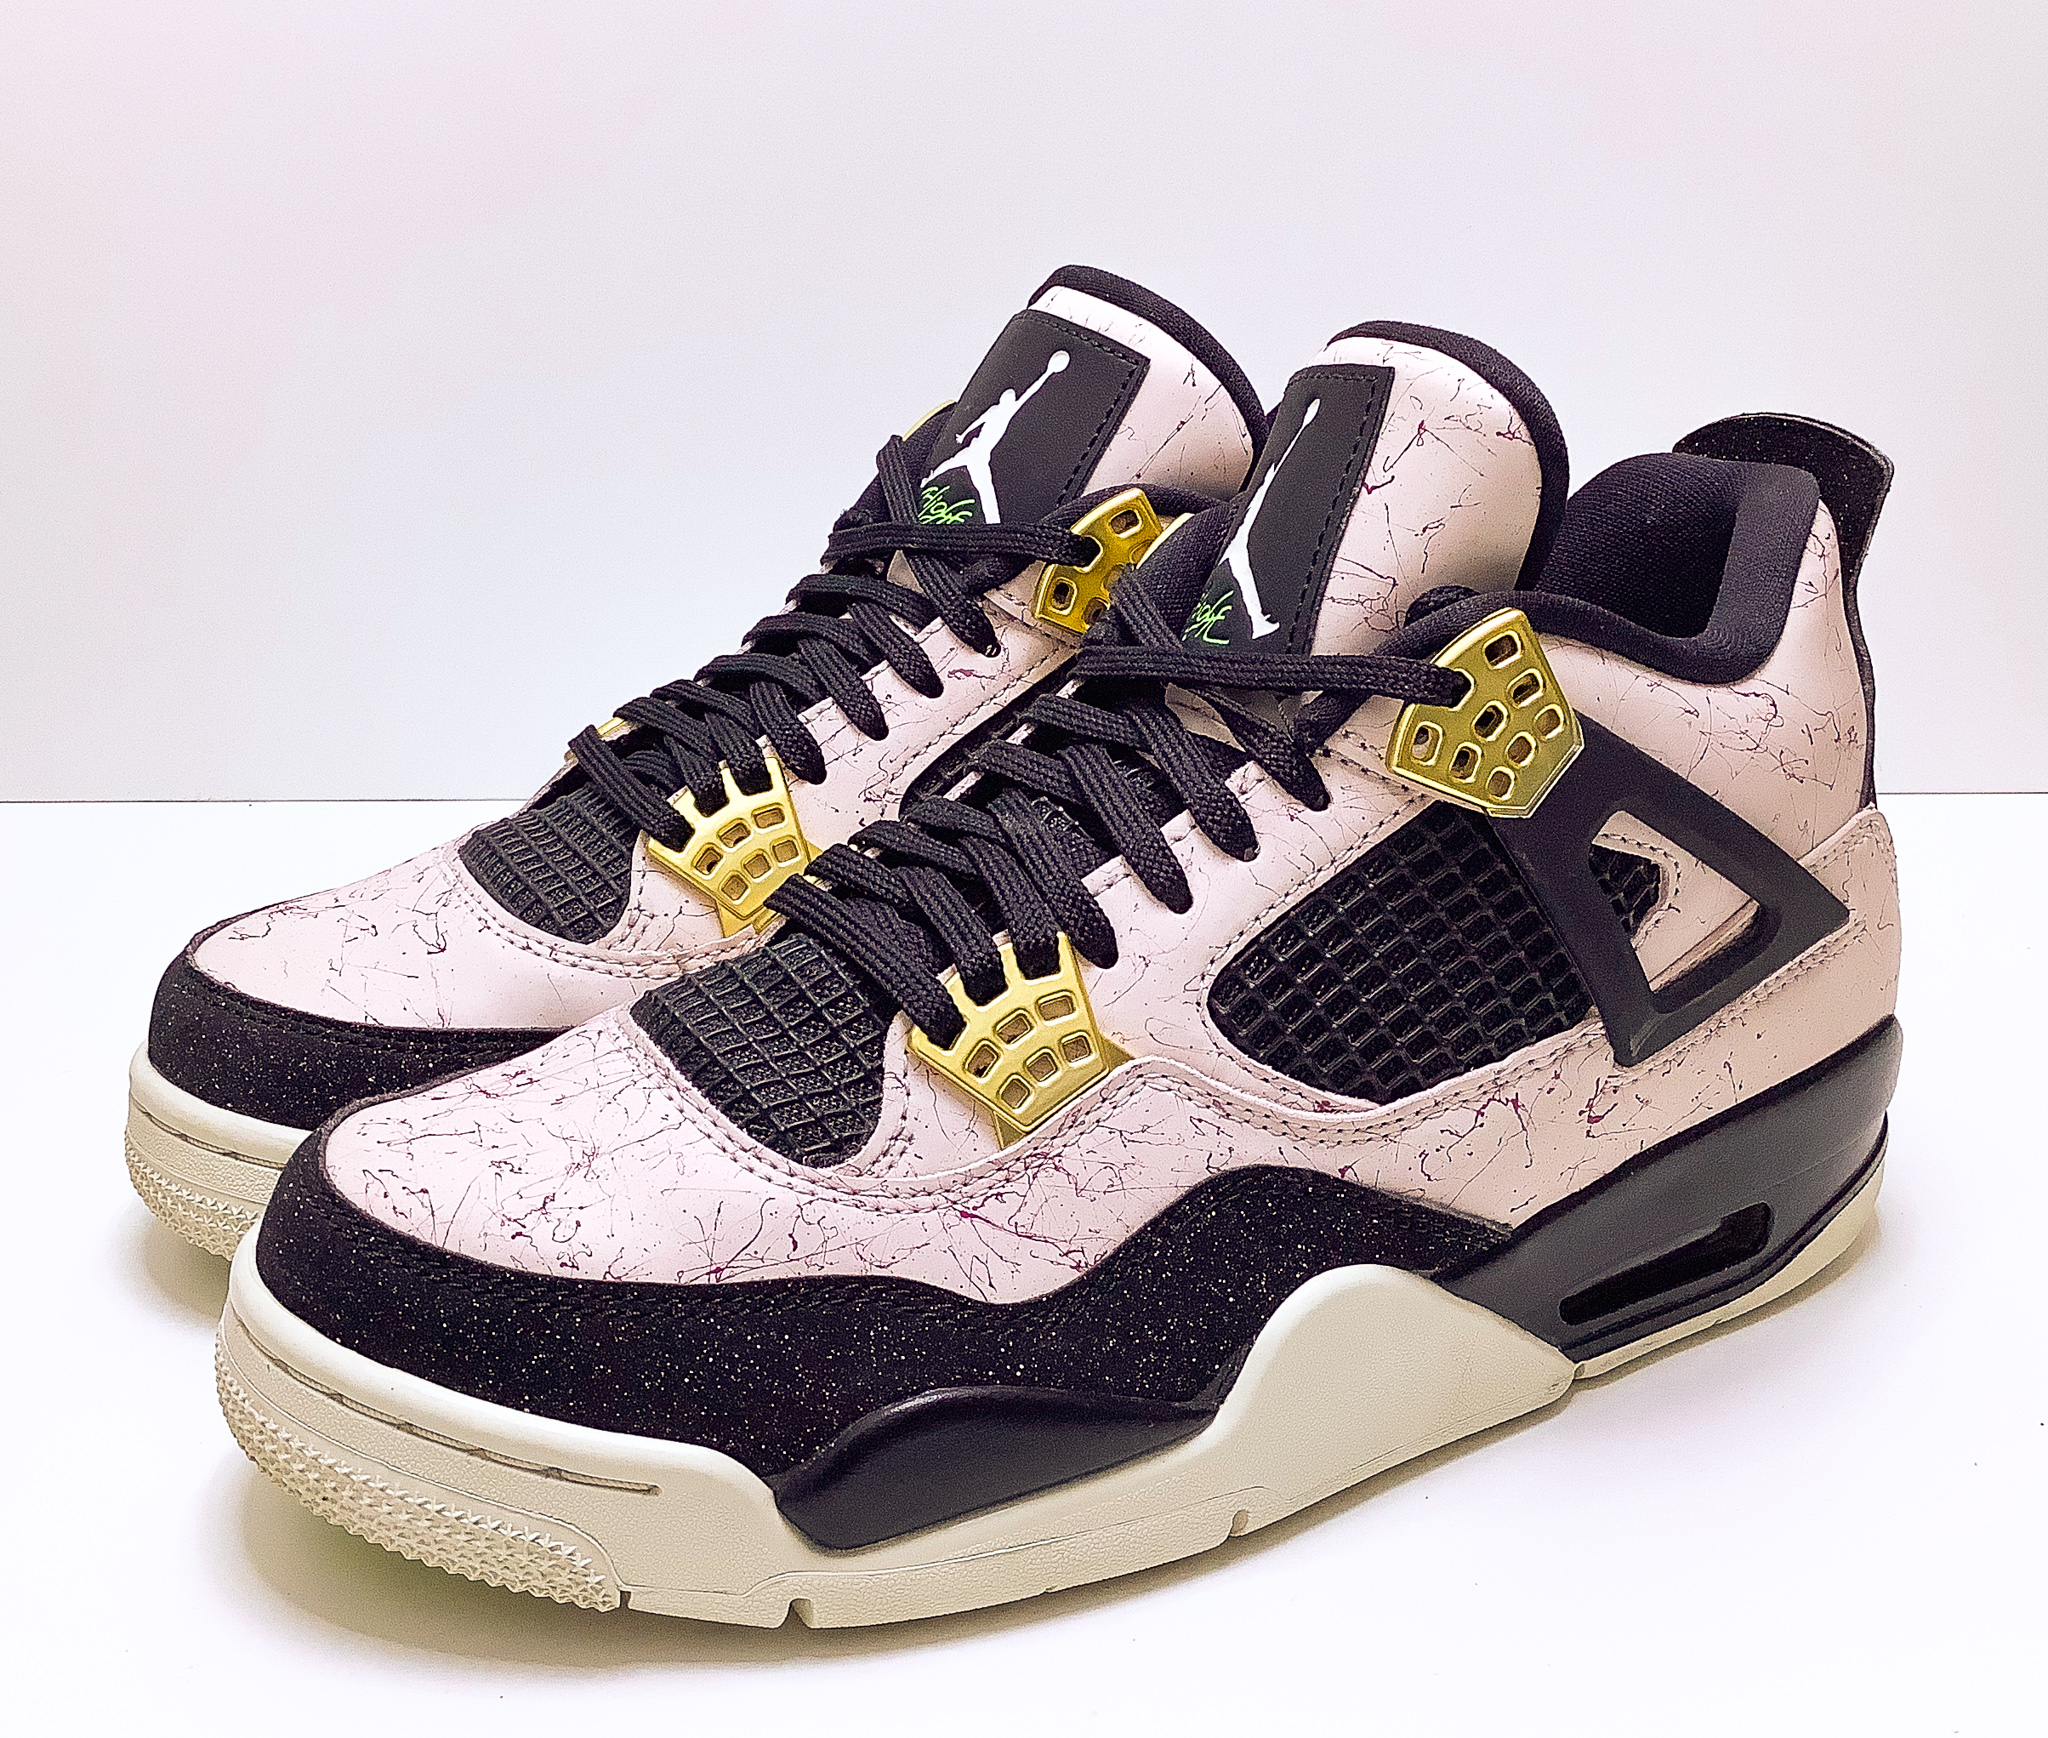 Jordan 4 Retro Silt Red Splatter (W)